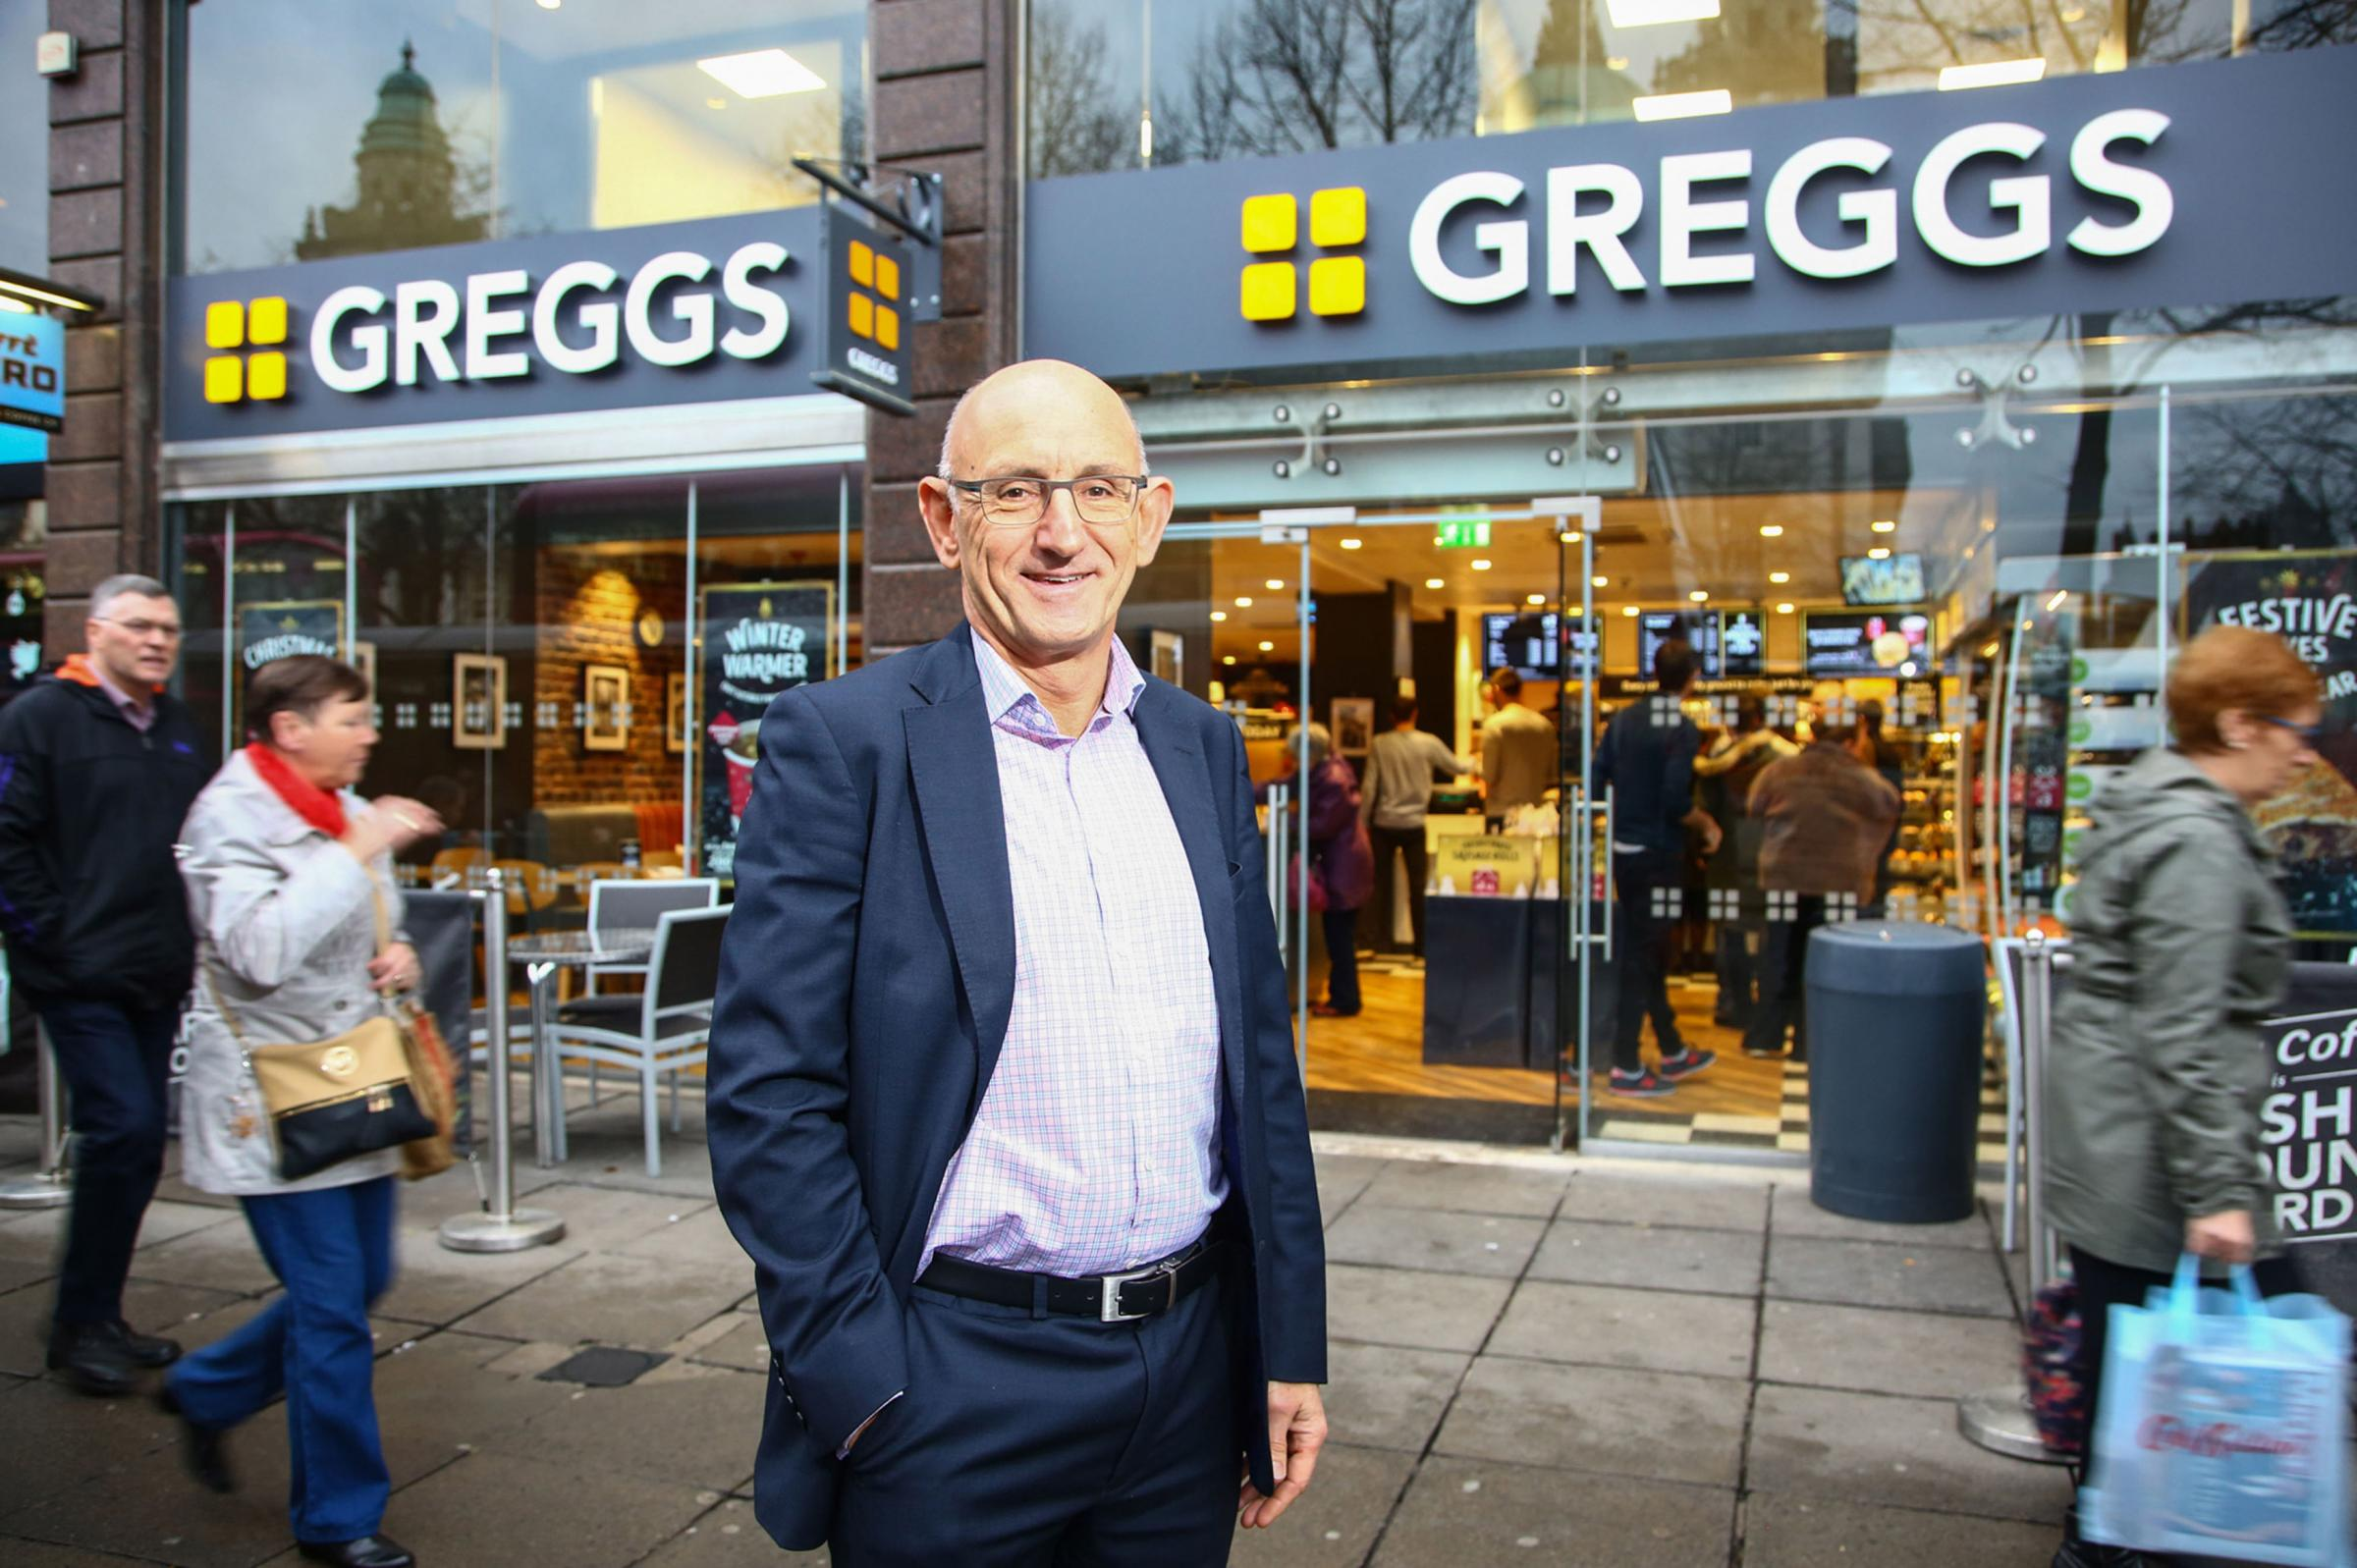 Greggs Chief Executive Roger Whiteside